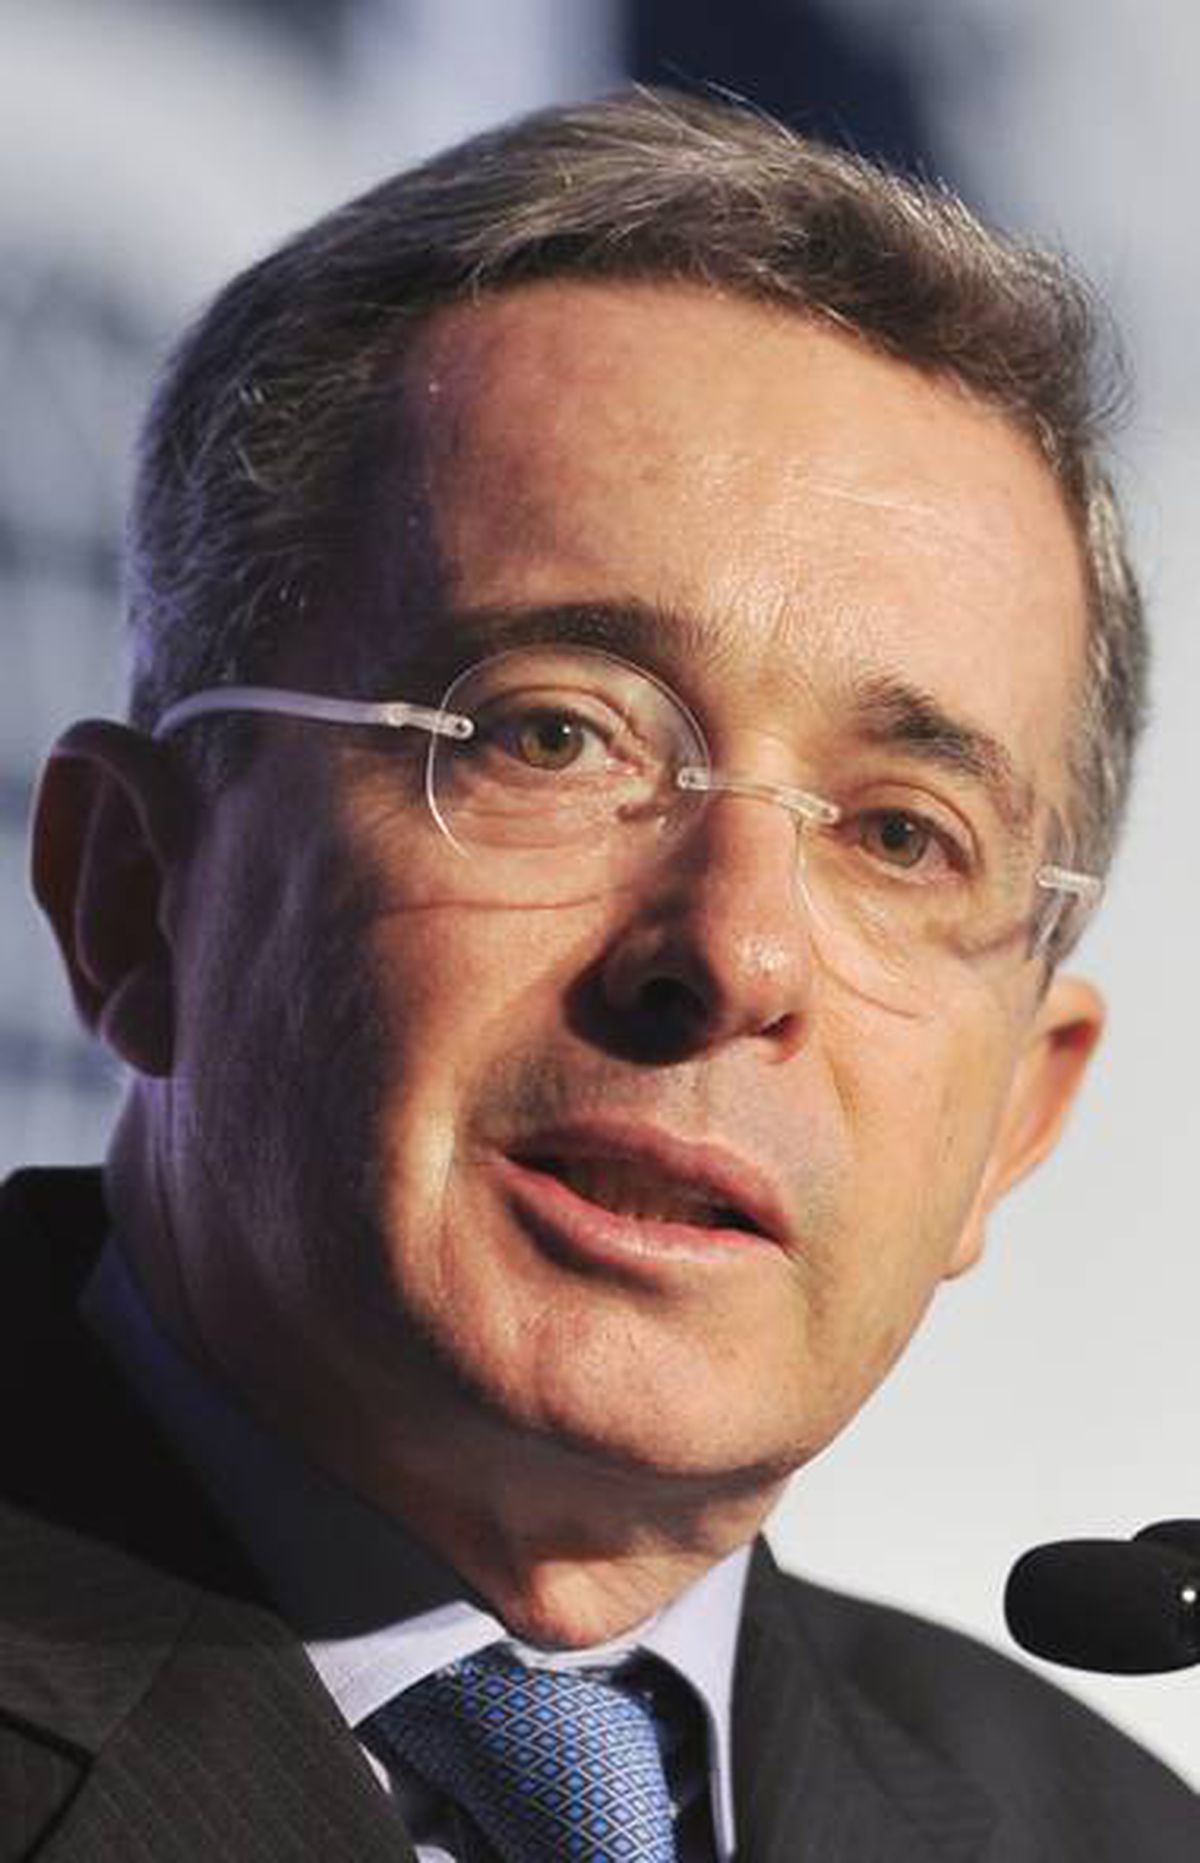 COLOMBIA: Former Colombian President Alvaro Uribe sought secret talks during his second term with Colombia's main leftist rebel group in Sweden, and the guerrillas even reached out to the U.S. embassy, according to leaked U.S. diplomatic cables. But it appears none of the described contacts made headway toward resolving Colombia's nearly half century-old civil conflict, which claims several thousand lives annually. Mr. Uribe left office in August, 2010, after badly crippling the leftist Revolutionary Armed Forces of Colombia, or FARC, with a withering military campaign and refused steadfastly to accept their demand for a demilitarized zone as a condition for talks.